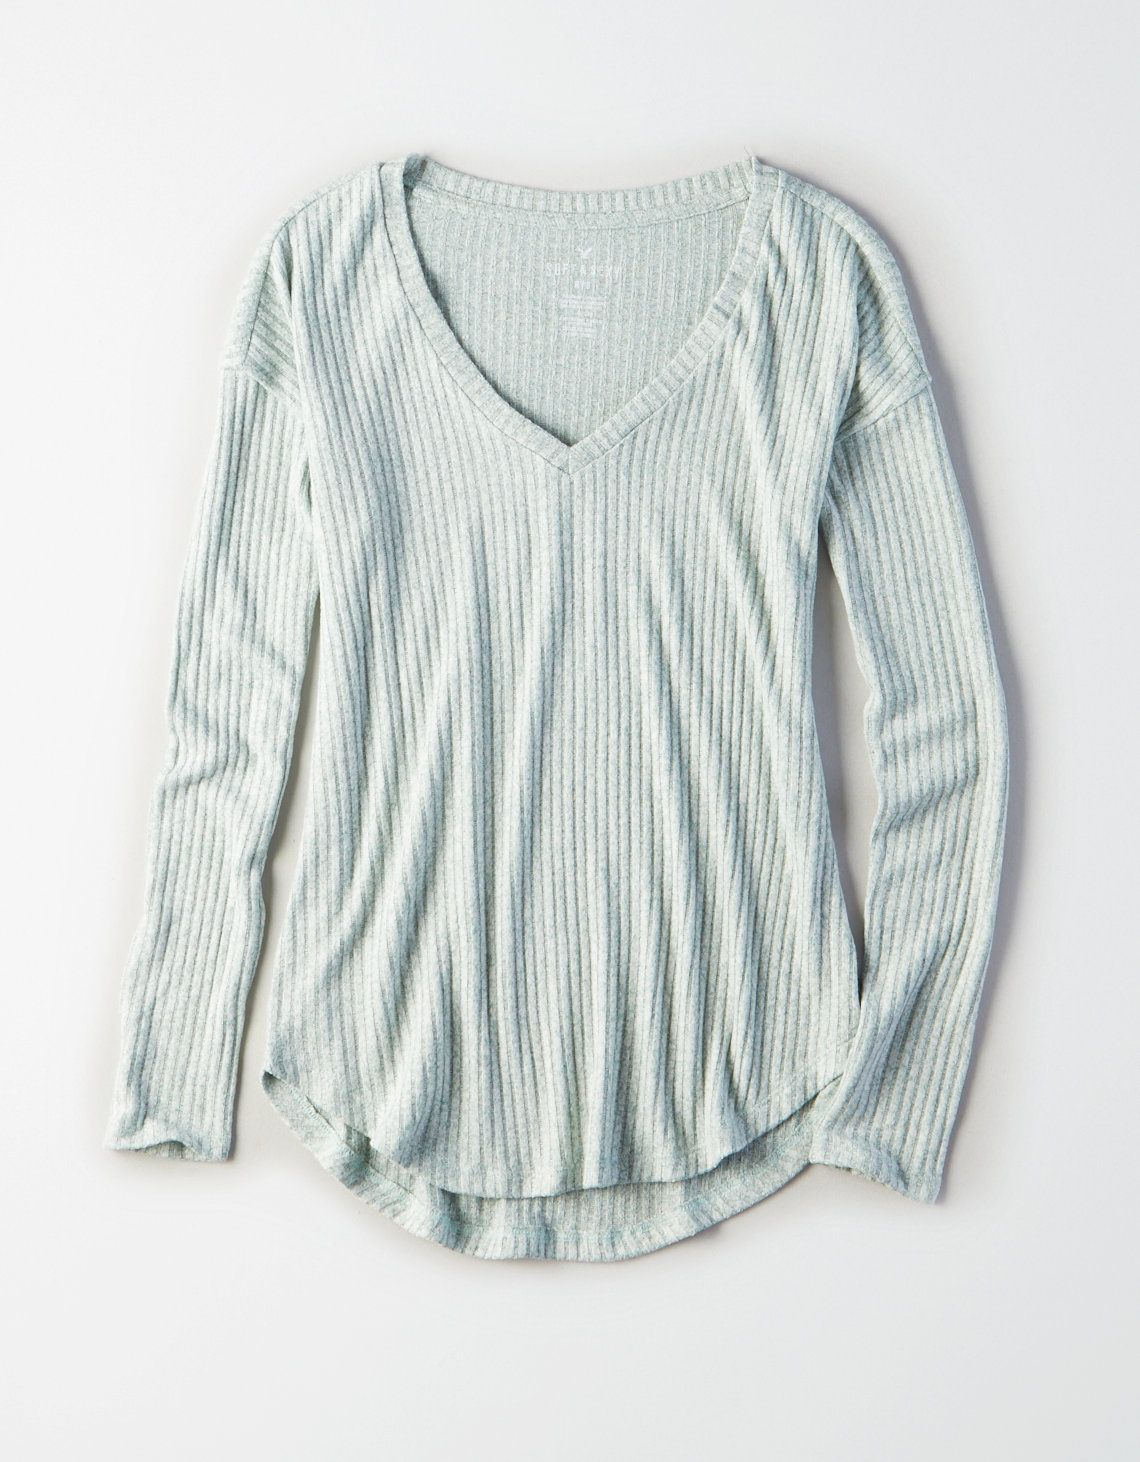 d79dcfd8e3f5 Pin by Francesca Valentino on Tops-Basic in 2019   Long sleeve tops ...